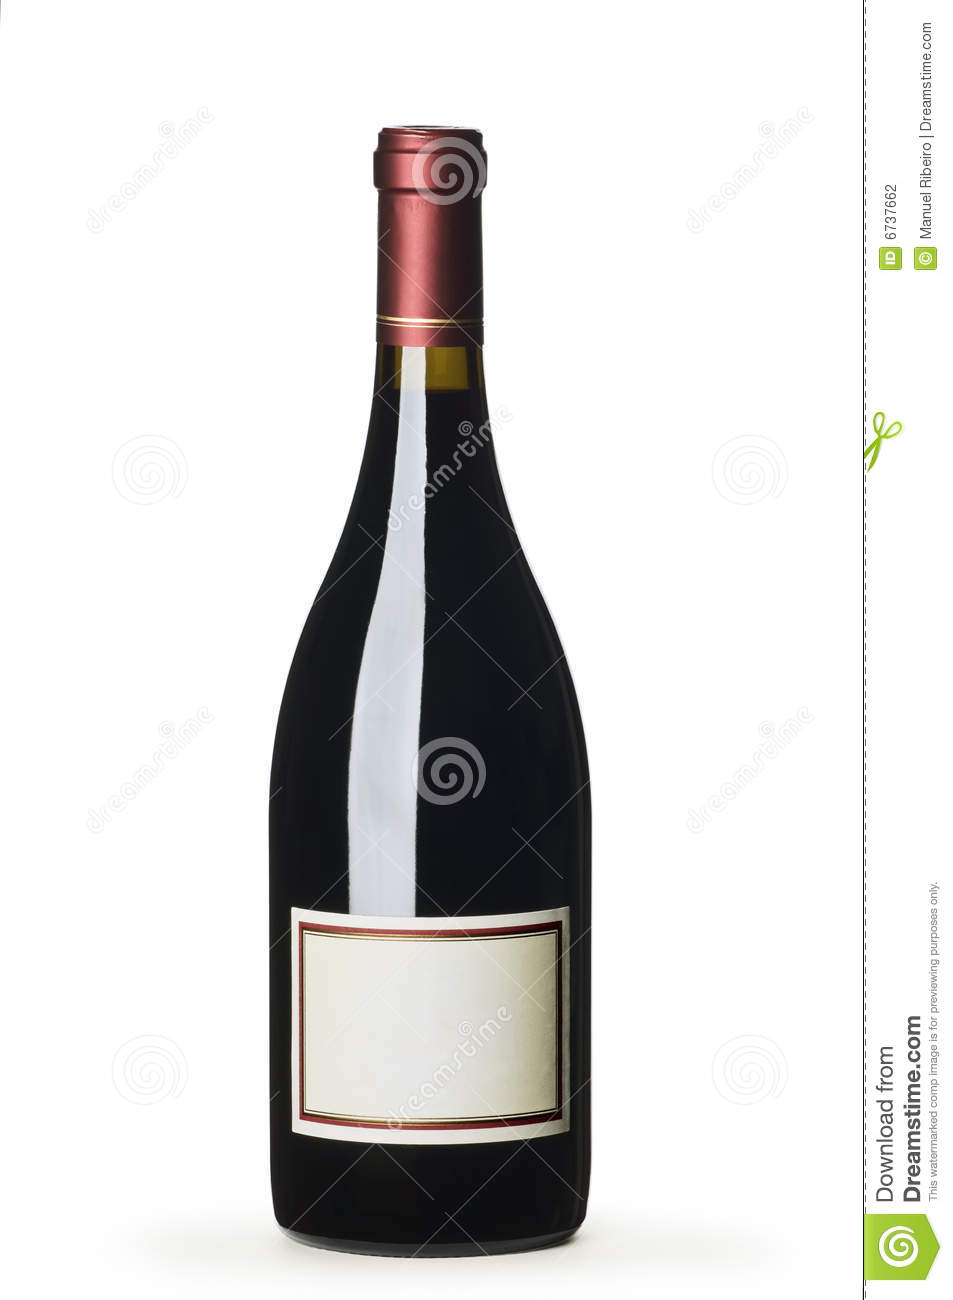 red wine bottle bottle red wine